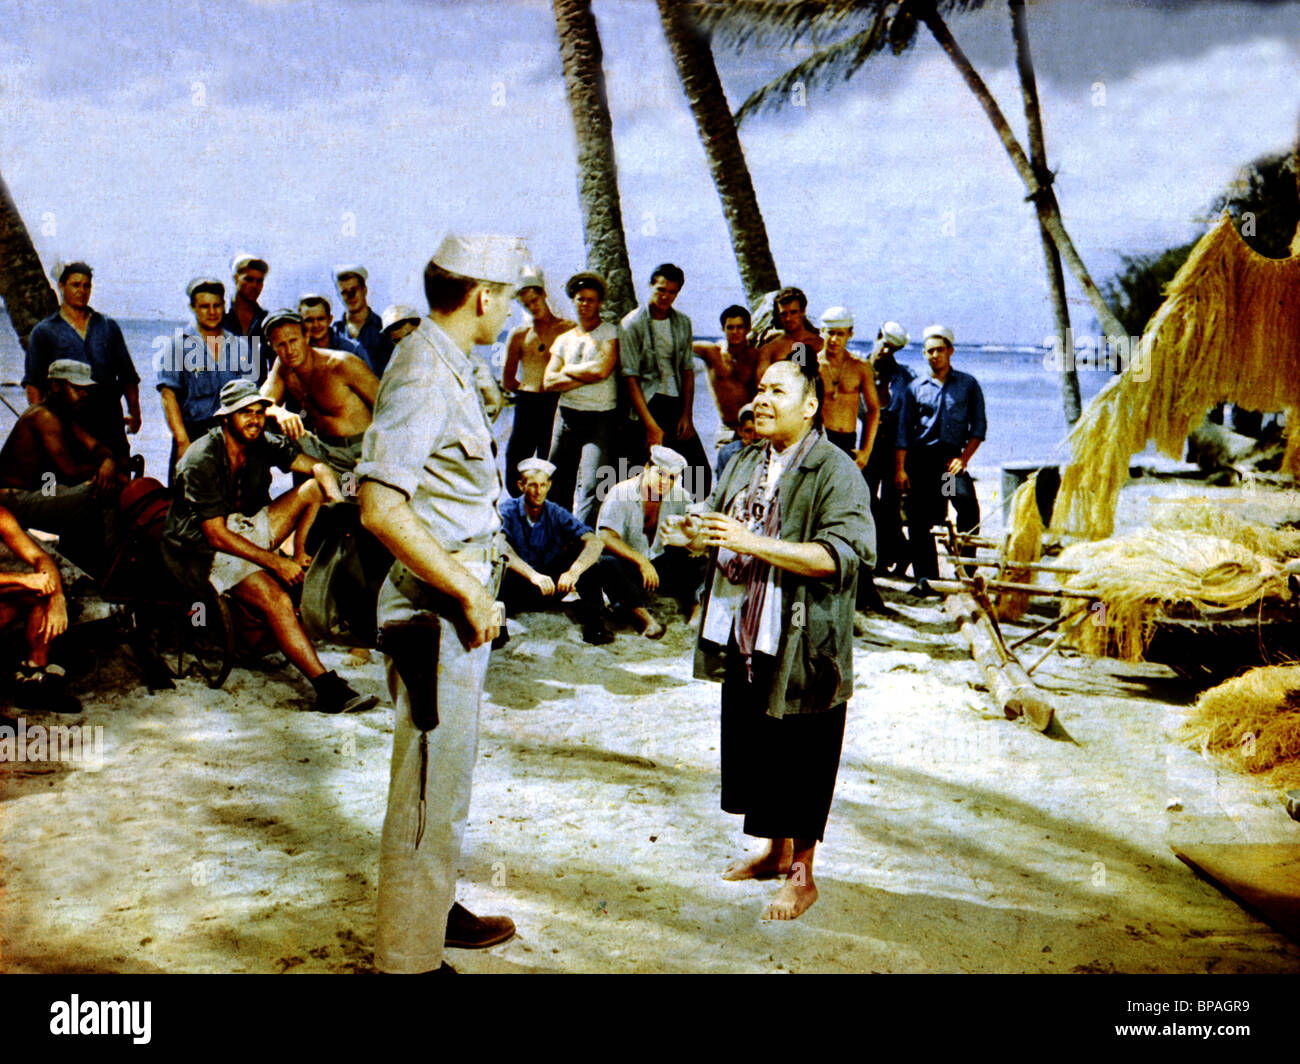 JUANITA HALL SOUTH PACIFIC (1958) - Stock Image